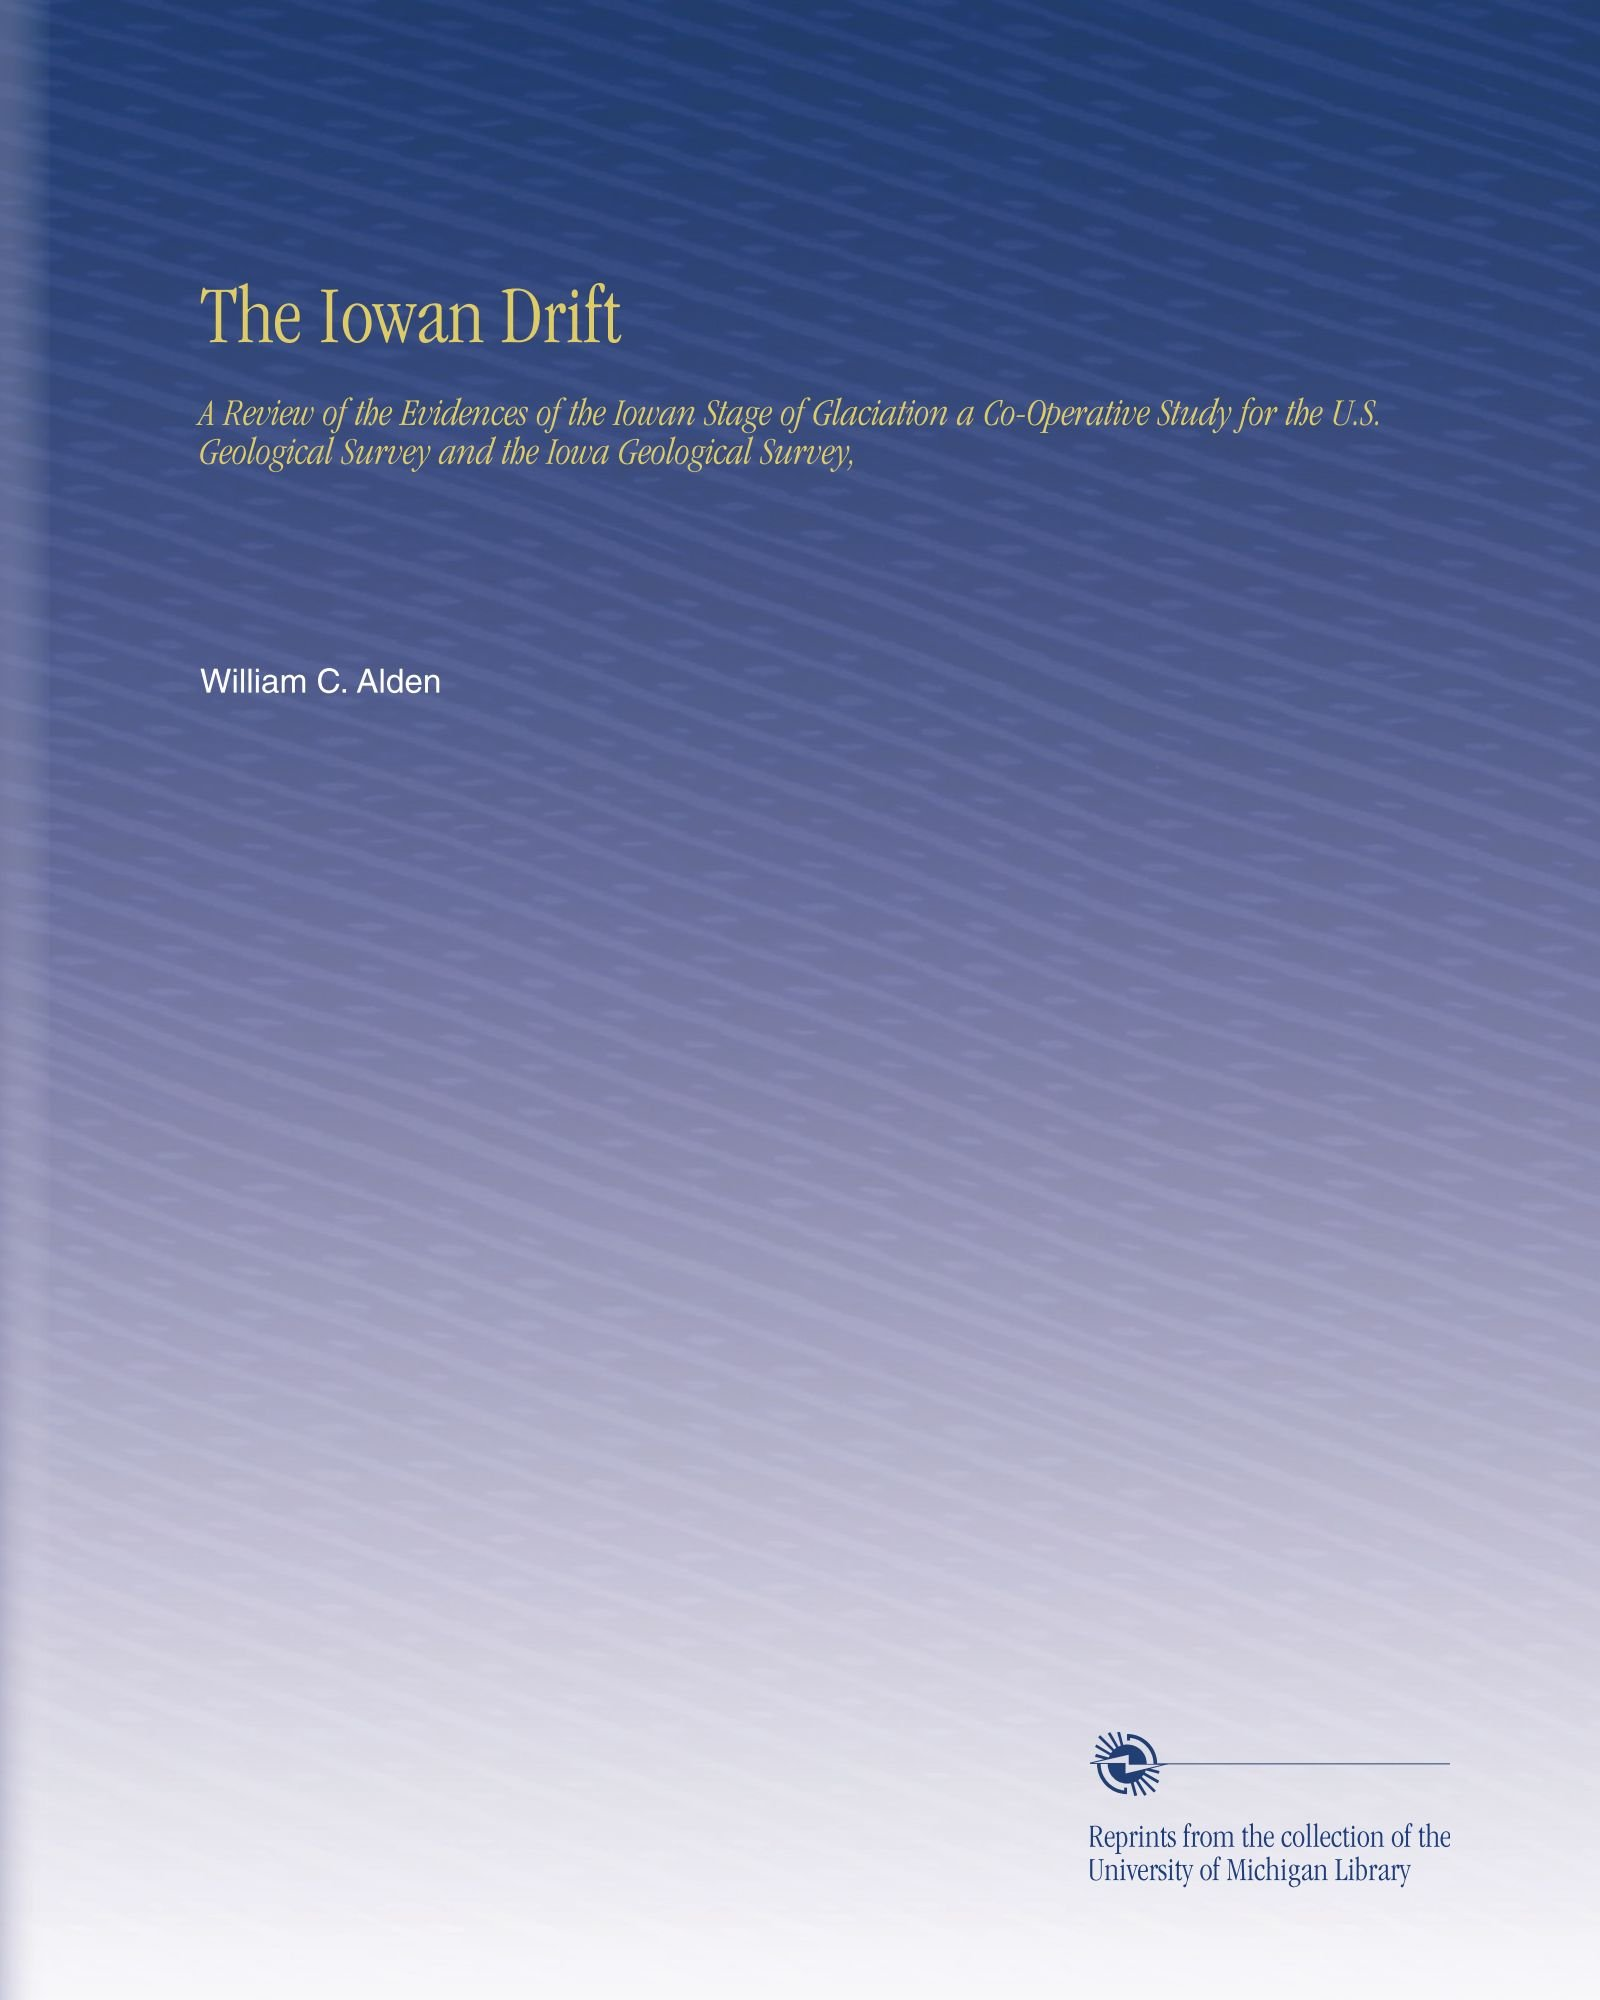 The Iowan Drift: A Review of the Evidences of the Iowan Stage of Glaciation a Co-Operative Study for the U.S. Geological Survey and the Iowa Geological Survey, pdf